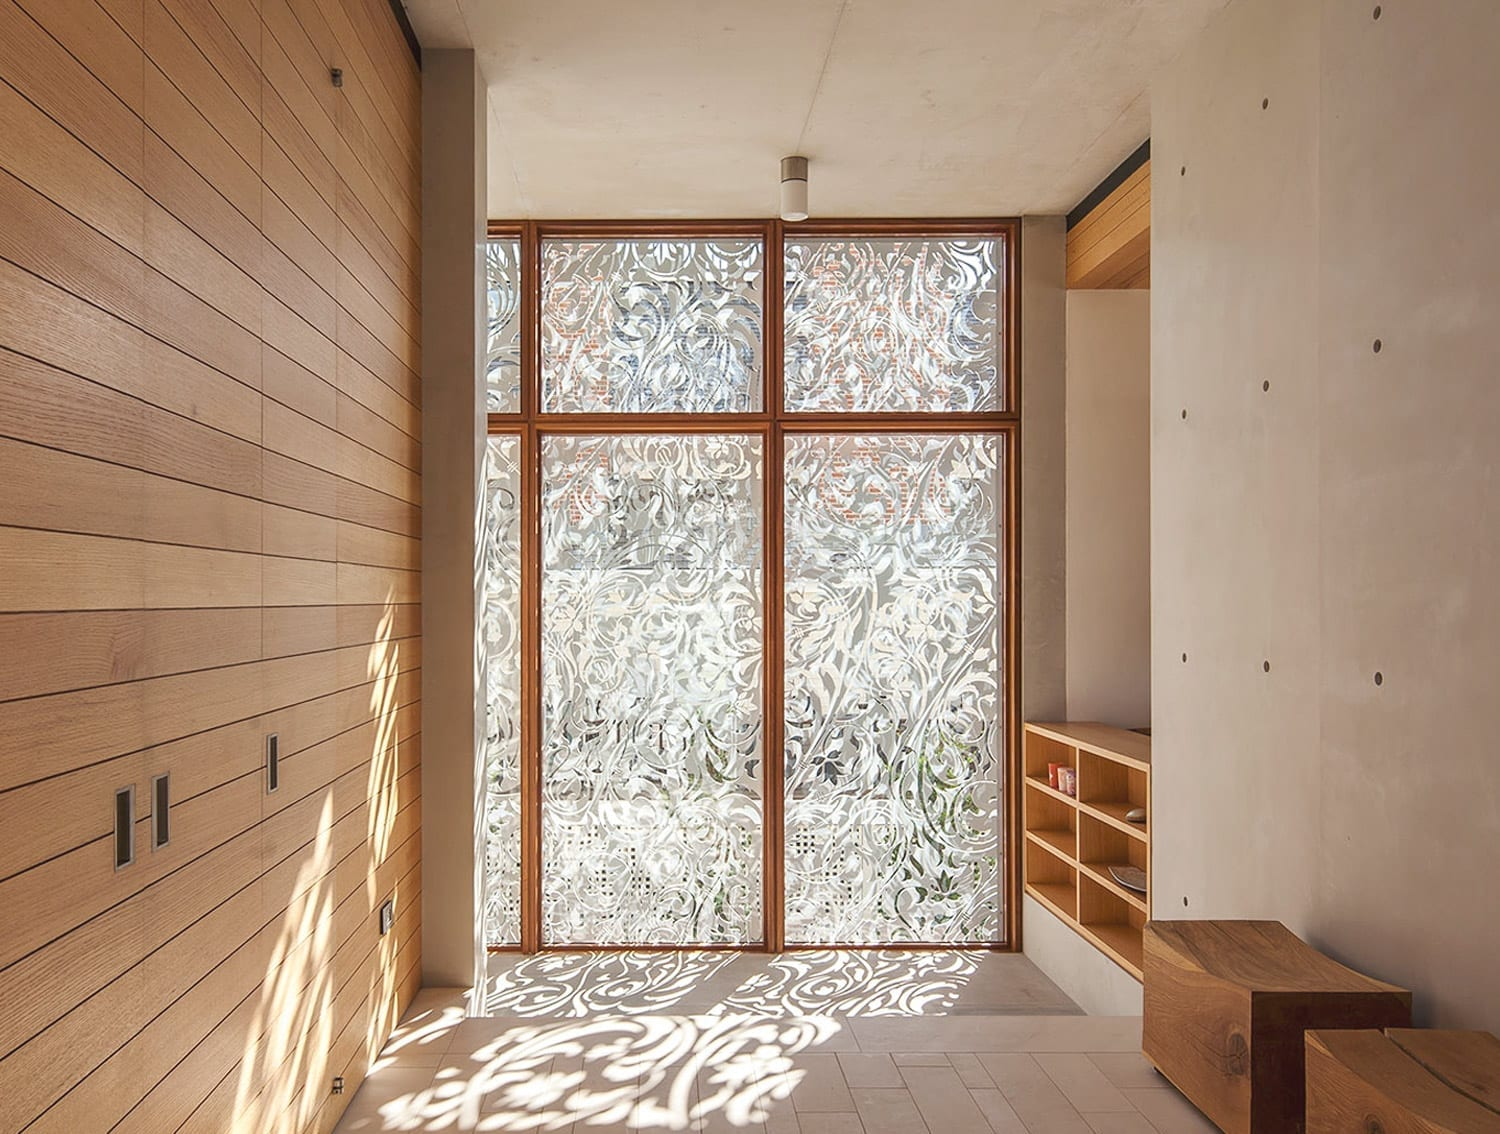 The design protects the interiors while enhancing the space with natural light.